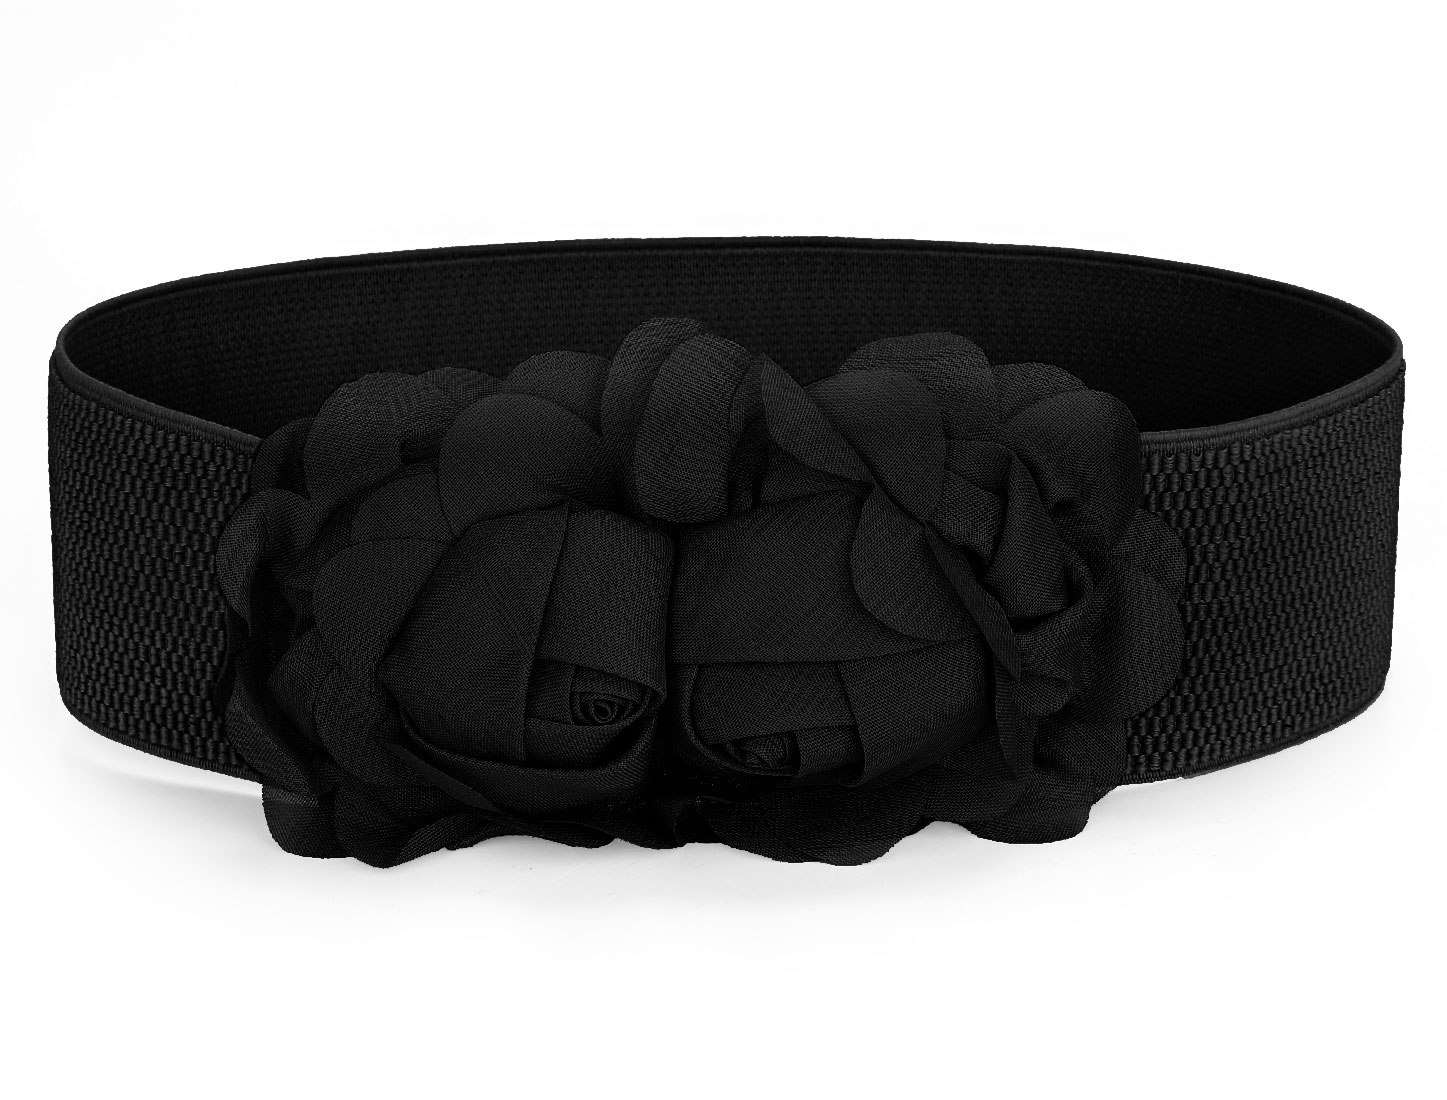 Faux Leather Elastic Fabric High Waistband Waistbelt Cinch Waist Belt Black for Lady